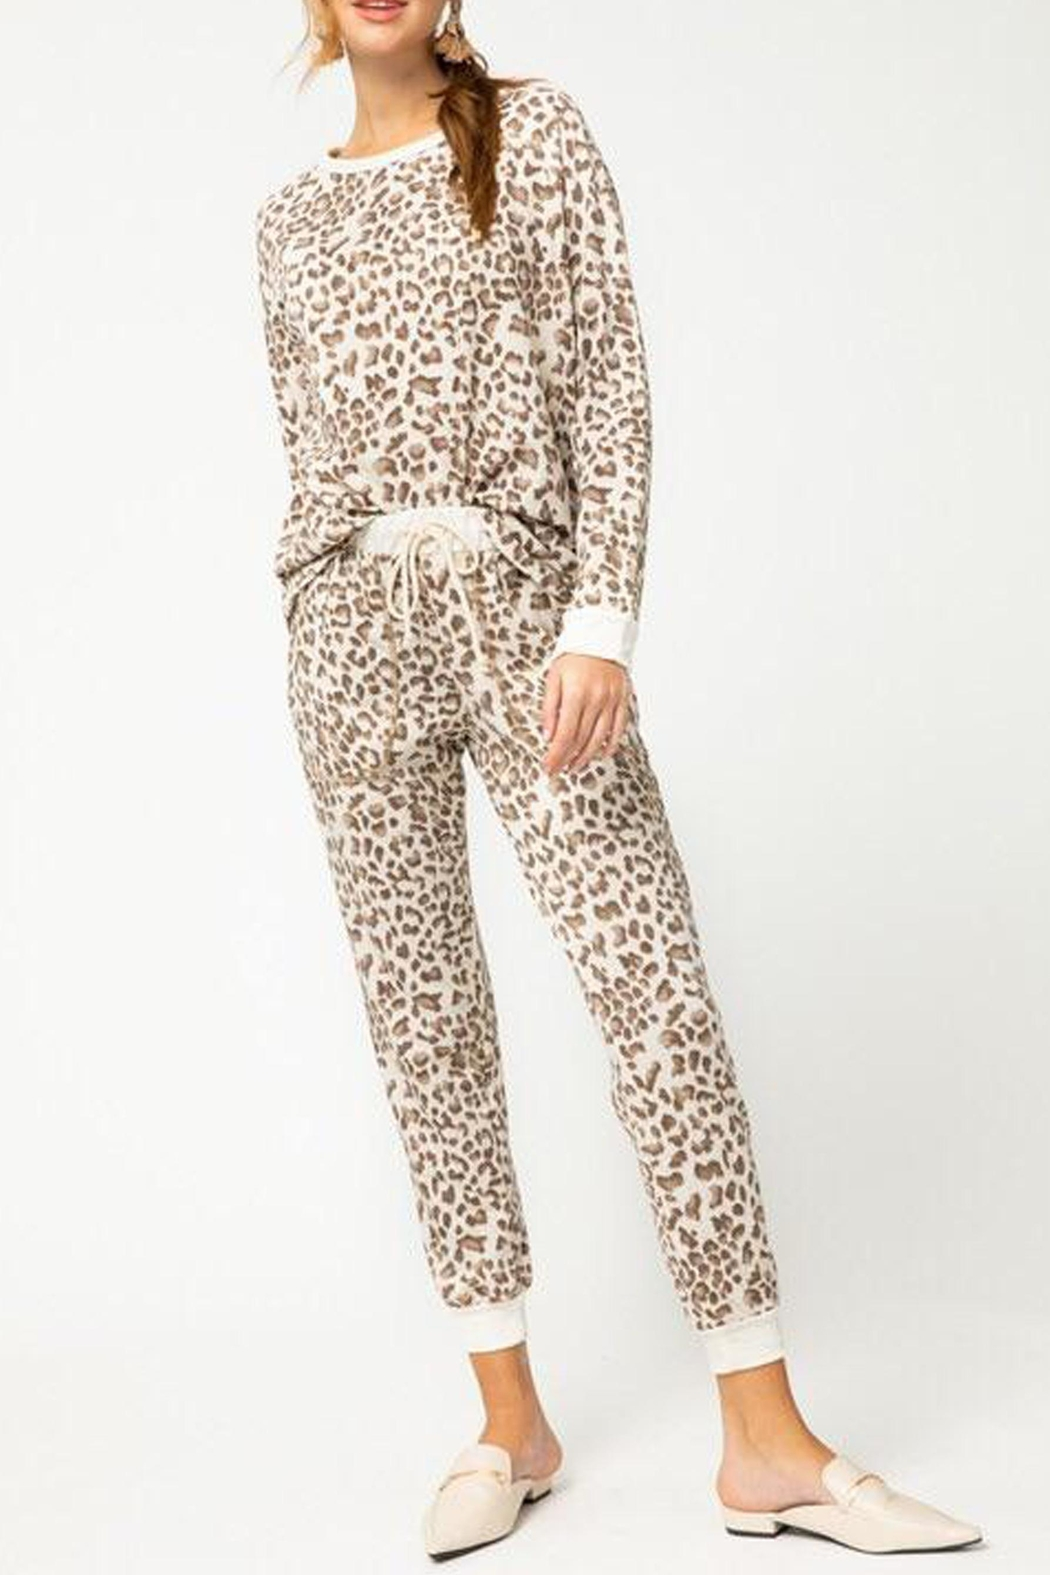 Faith Apparel Lauryn Leopard Loungewear - Front Cropped Image